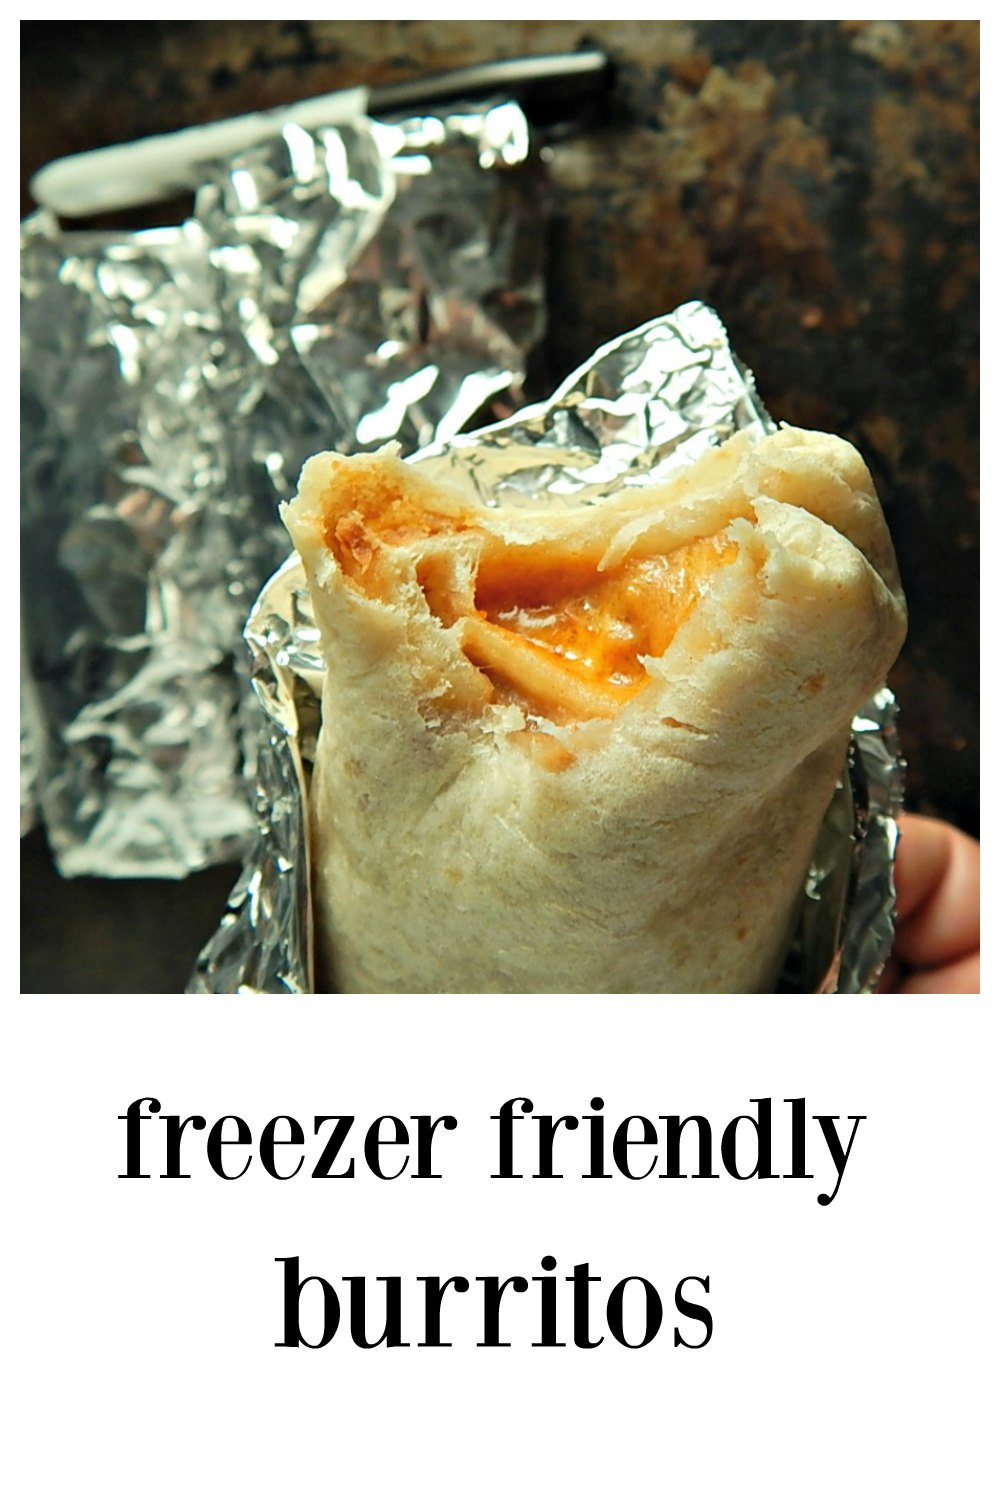 Having a stash of Freezer Friendly Burritos is kind of life-changing! They're a great fall back for dinner and make fantastic snacks. #FreezerBurritos #FreezerFriendlyBurritos #FrozenBurritos